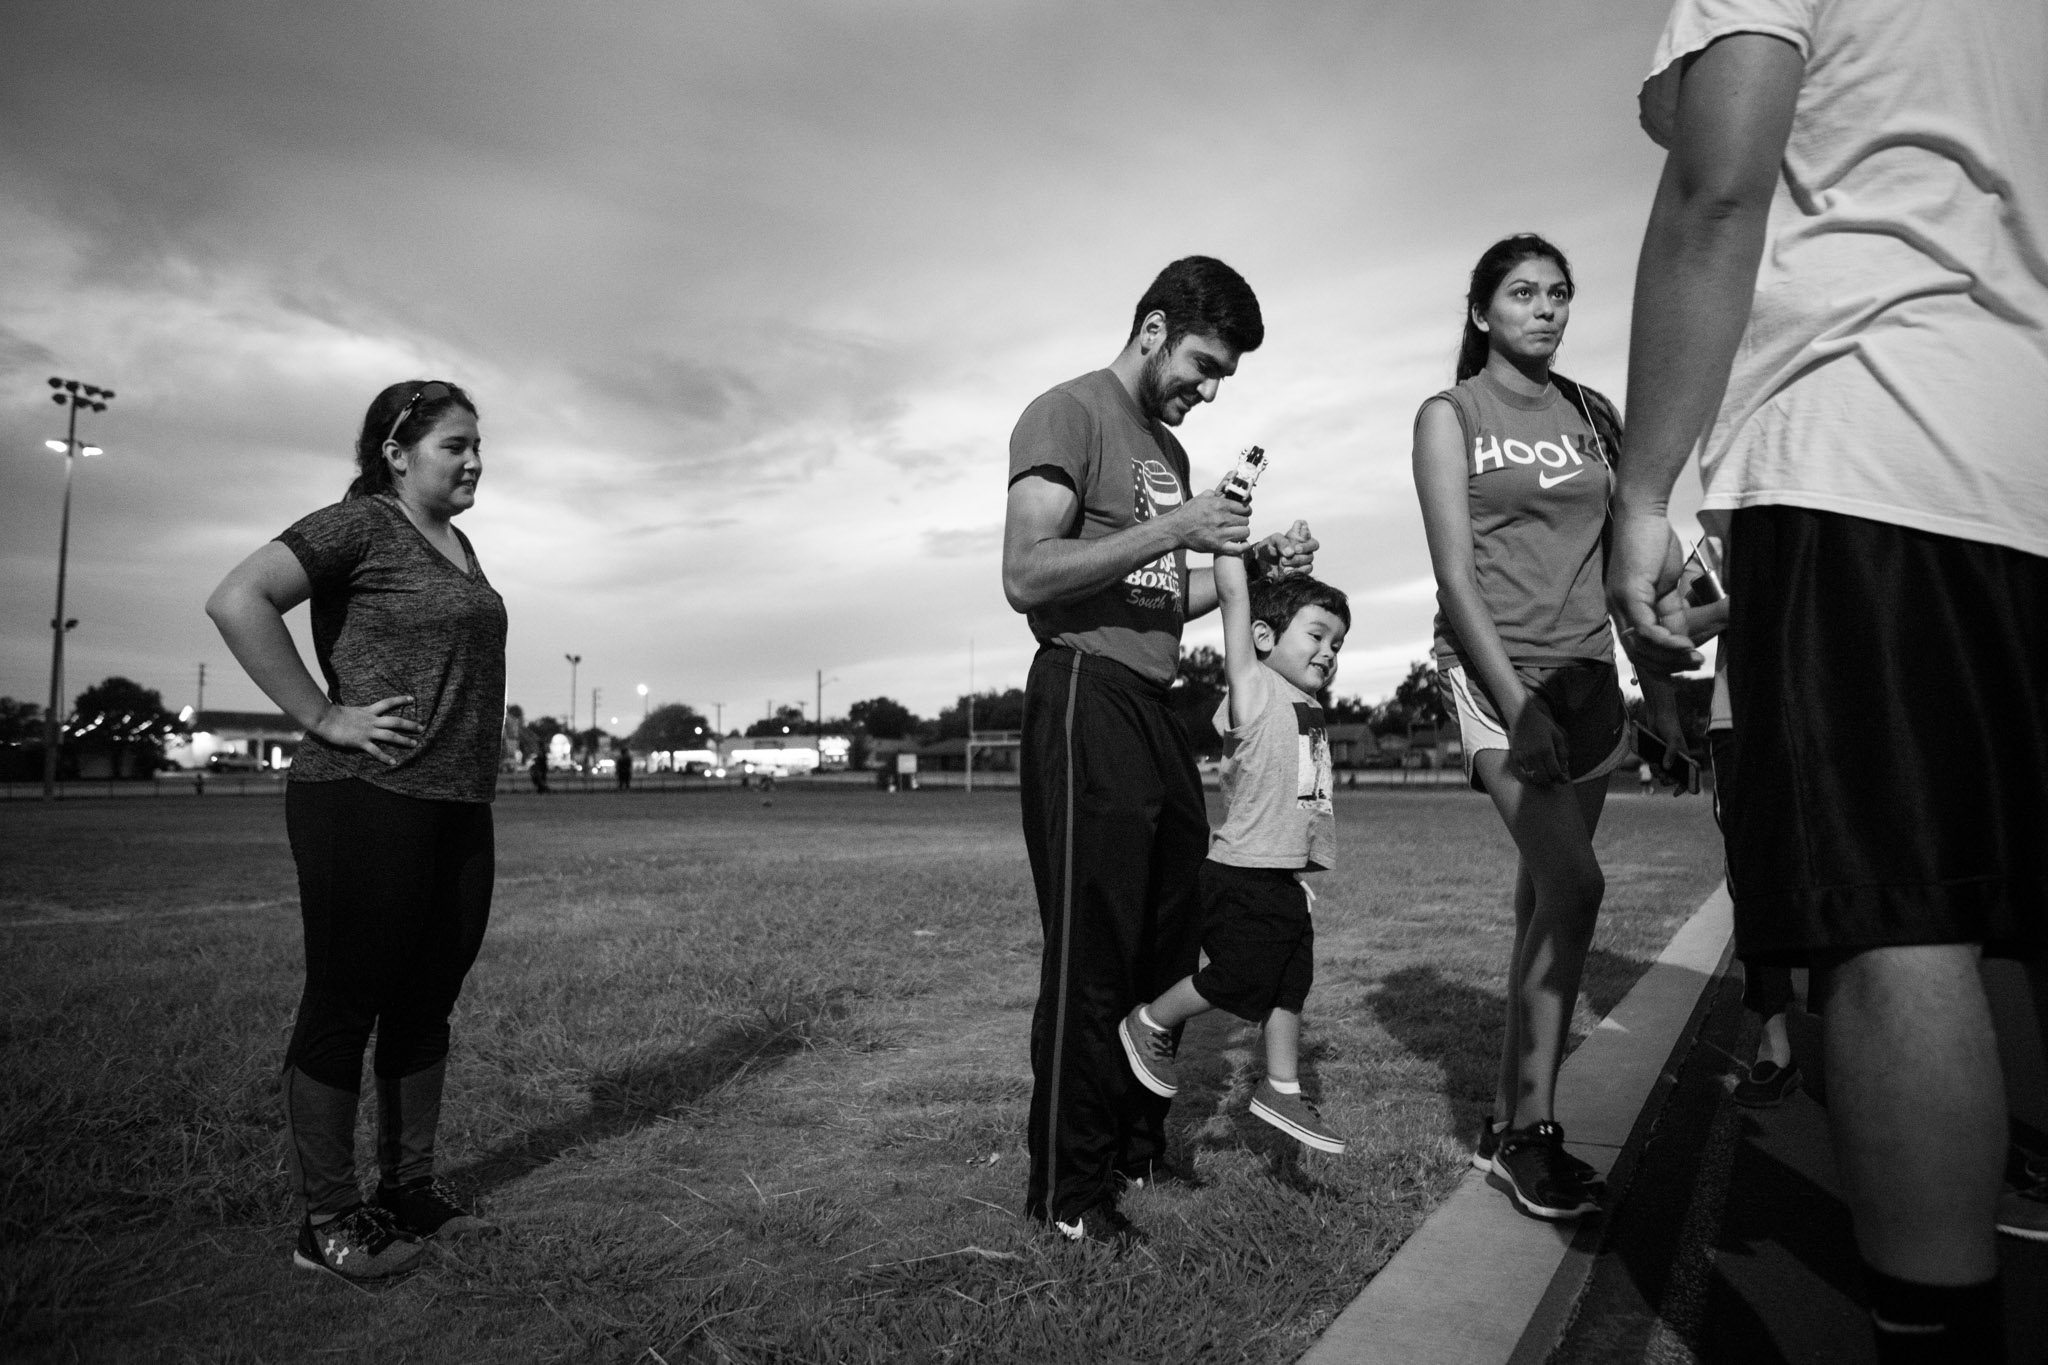 (From left) Alaska Martinez, Jimmy Martinez, Jimmy, 2, and Mary Martinez prepare to leave after spending an hour running around the track at Thomas Edison High School.